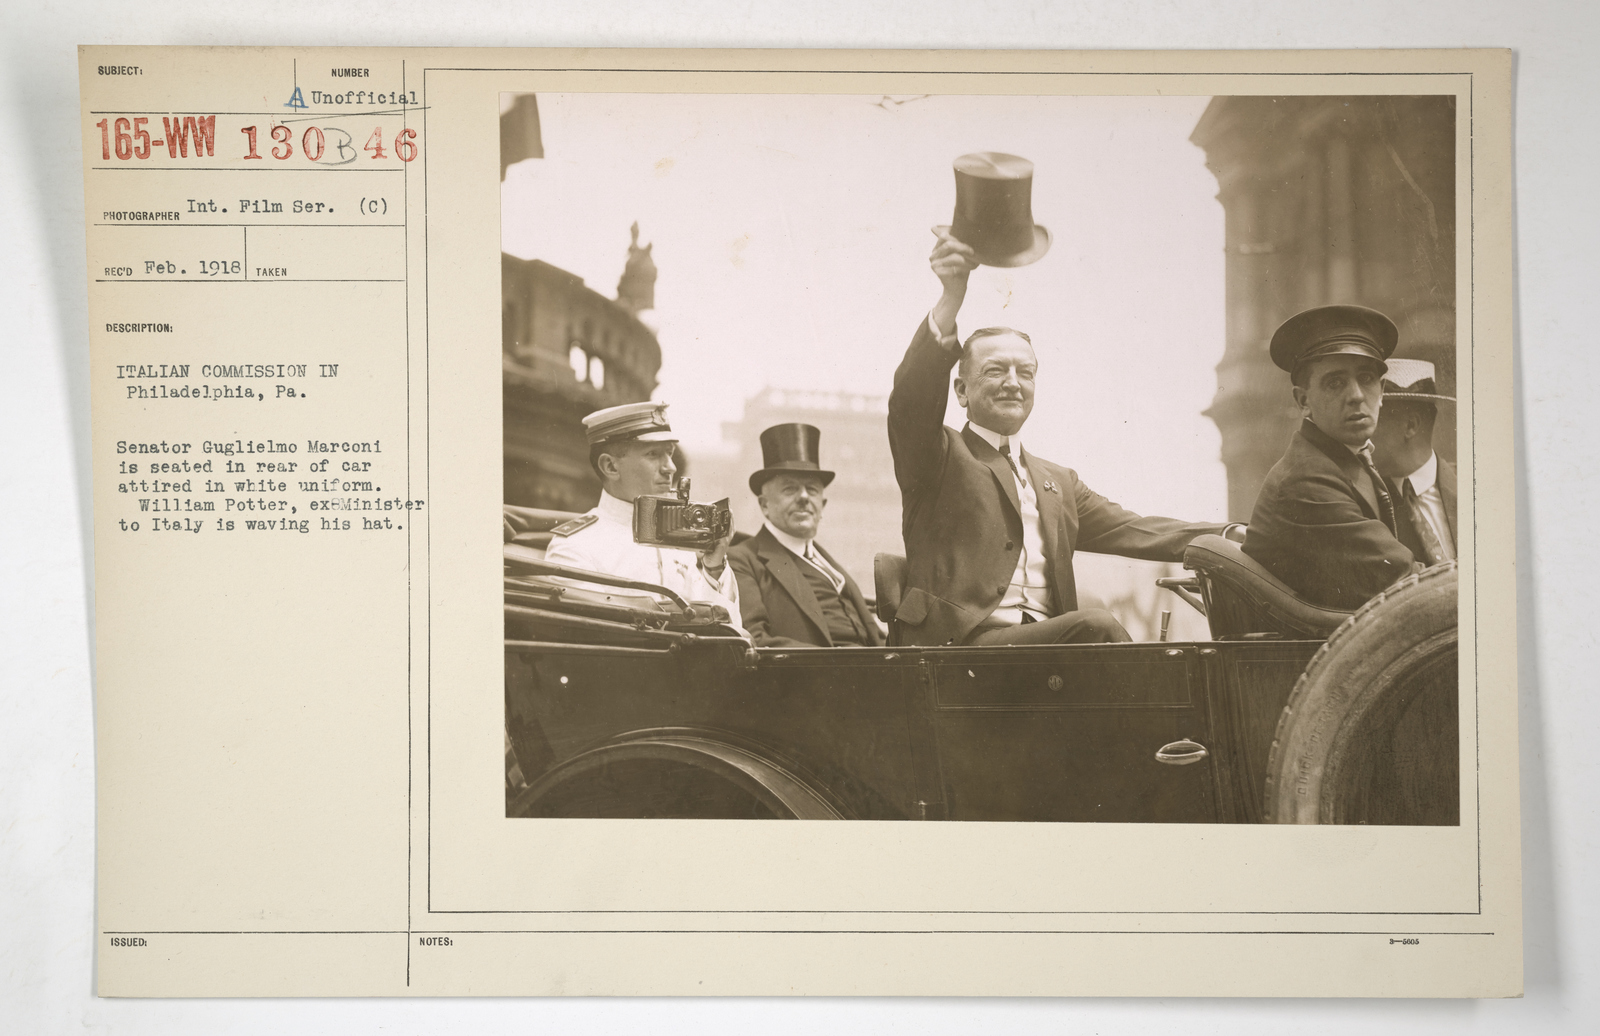 Commissions - Italy - Italian Commission in Philadelphia, Pennsylvania.  Senator Guglielmo Marconi is seated in rear of car attired in white uniform.  William Potter, ex-minister to Italy is waving his hat